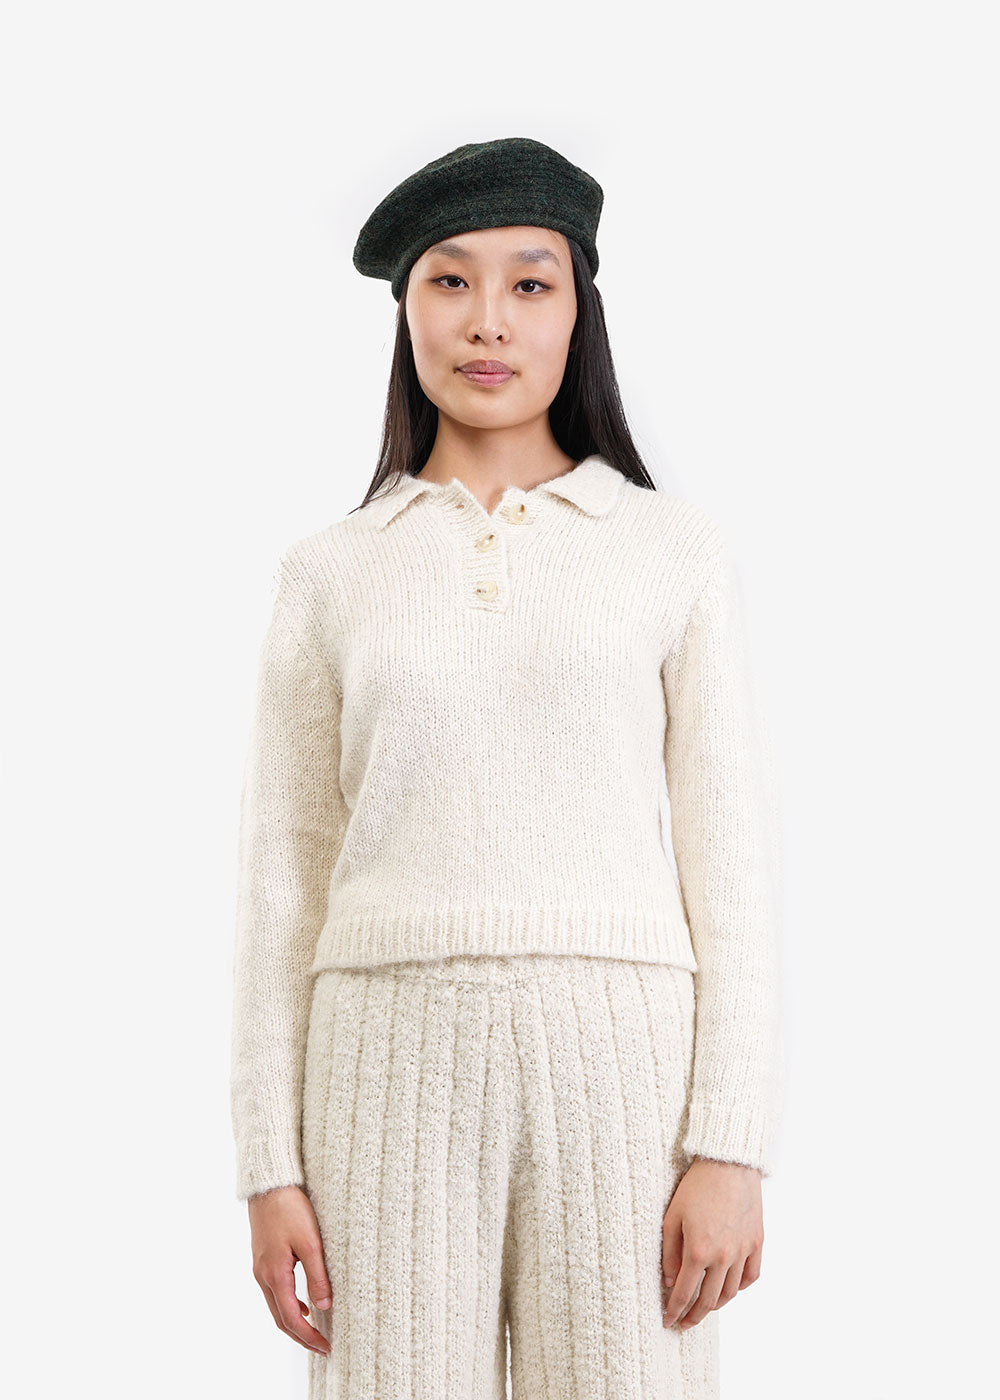 Kordal Studio Remy Collared Sweater — Shop sustainable fashion and slow fashion at New Classics Studios